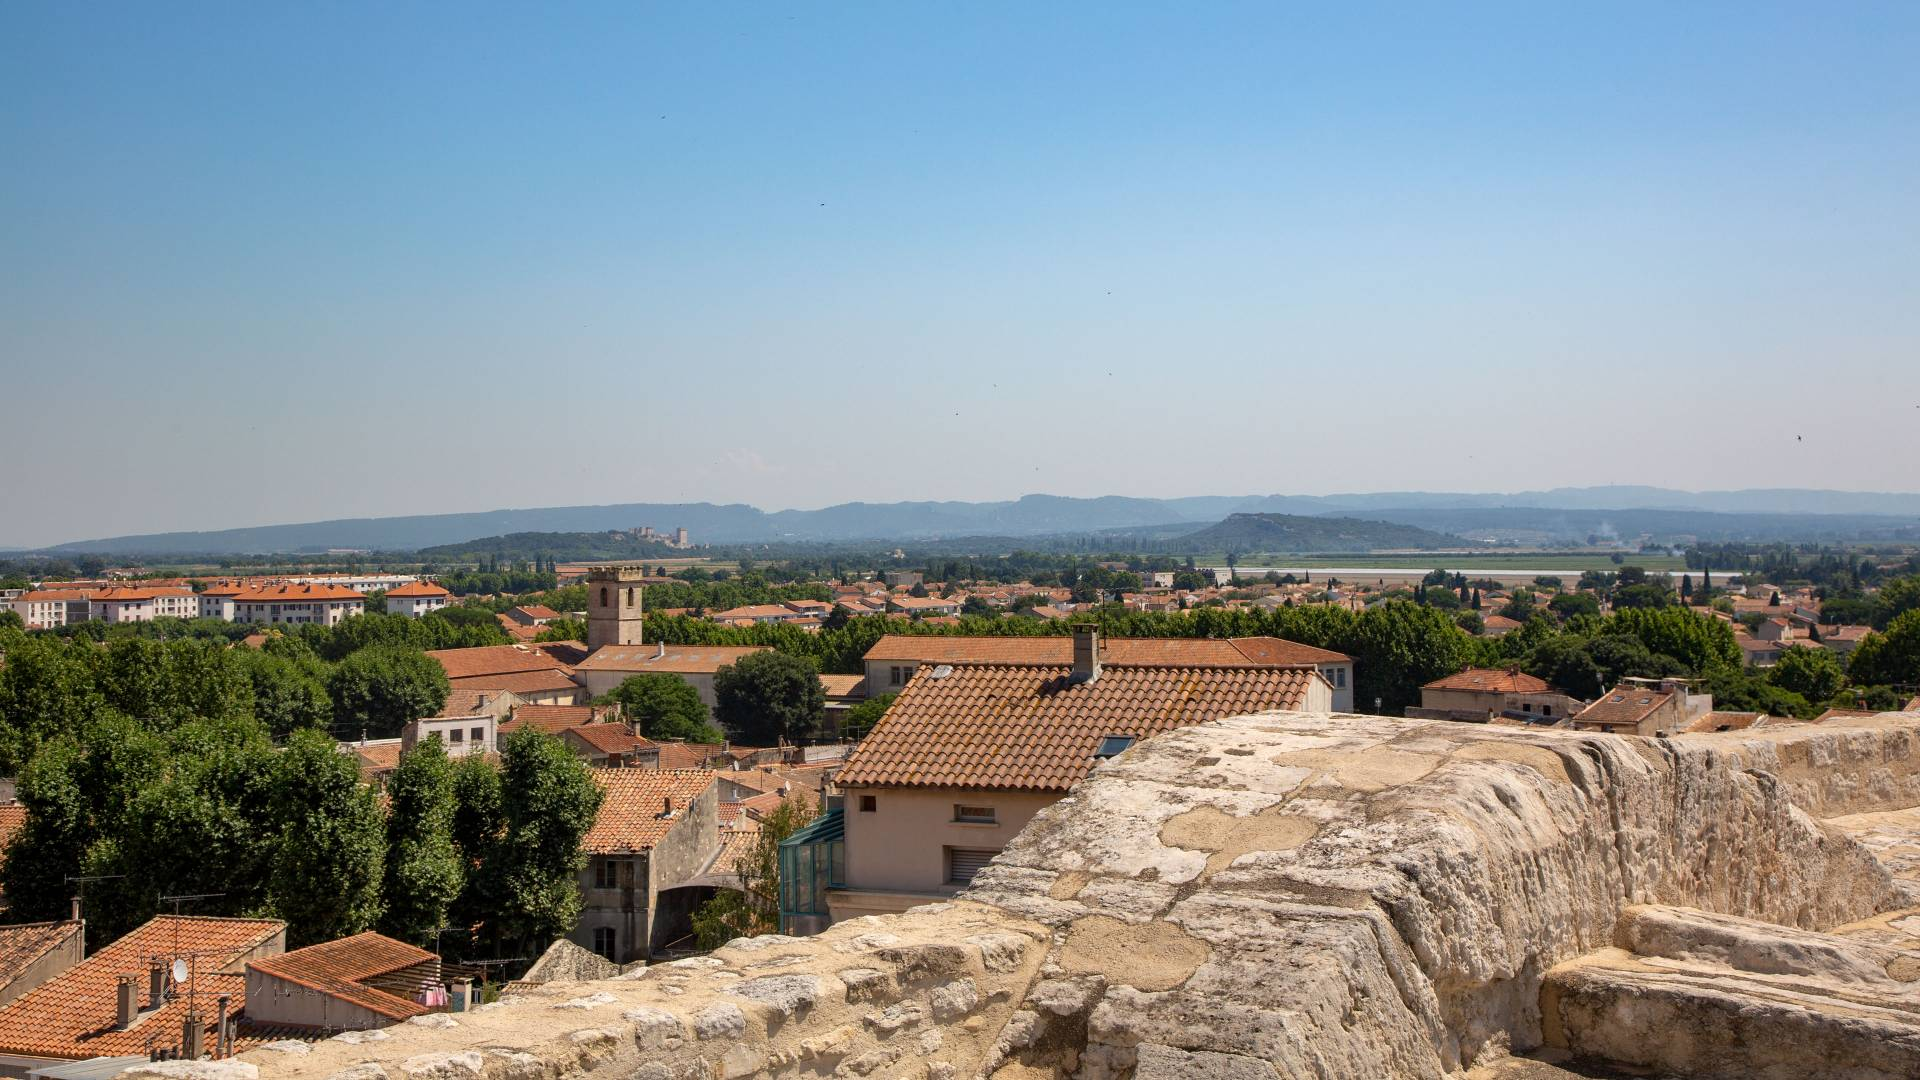 View of Arles, France from amphitheater